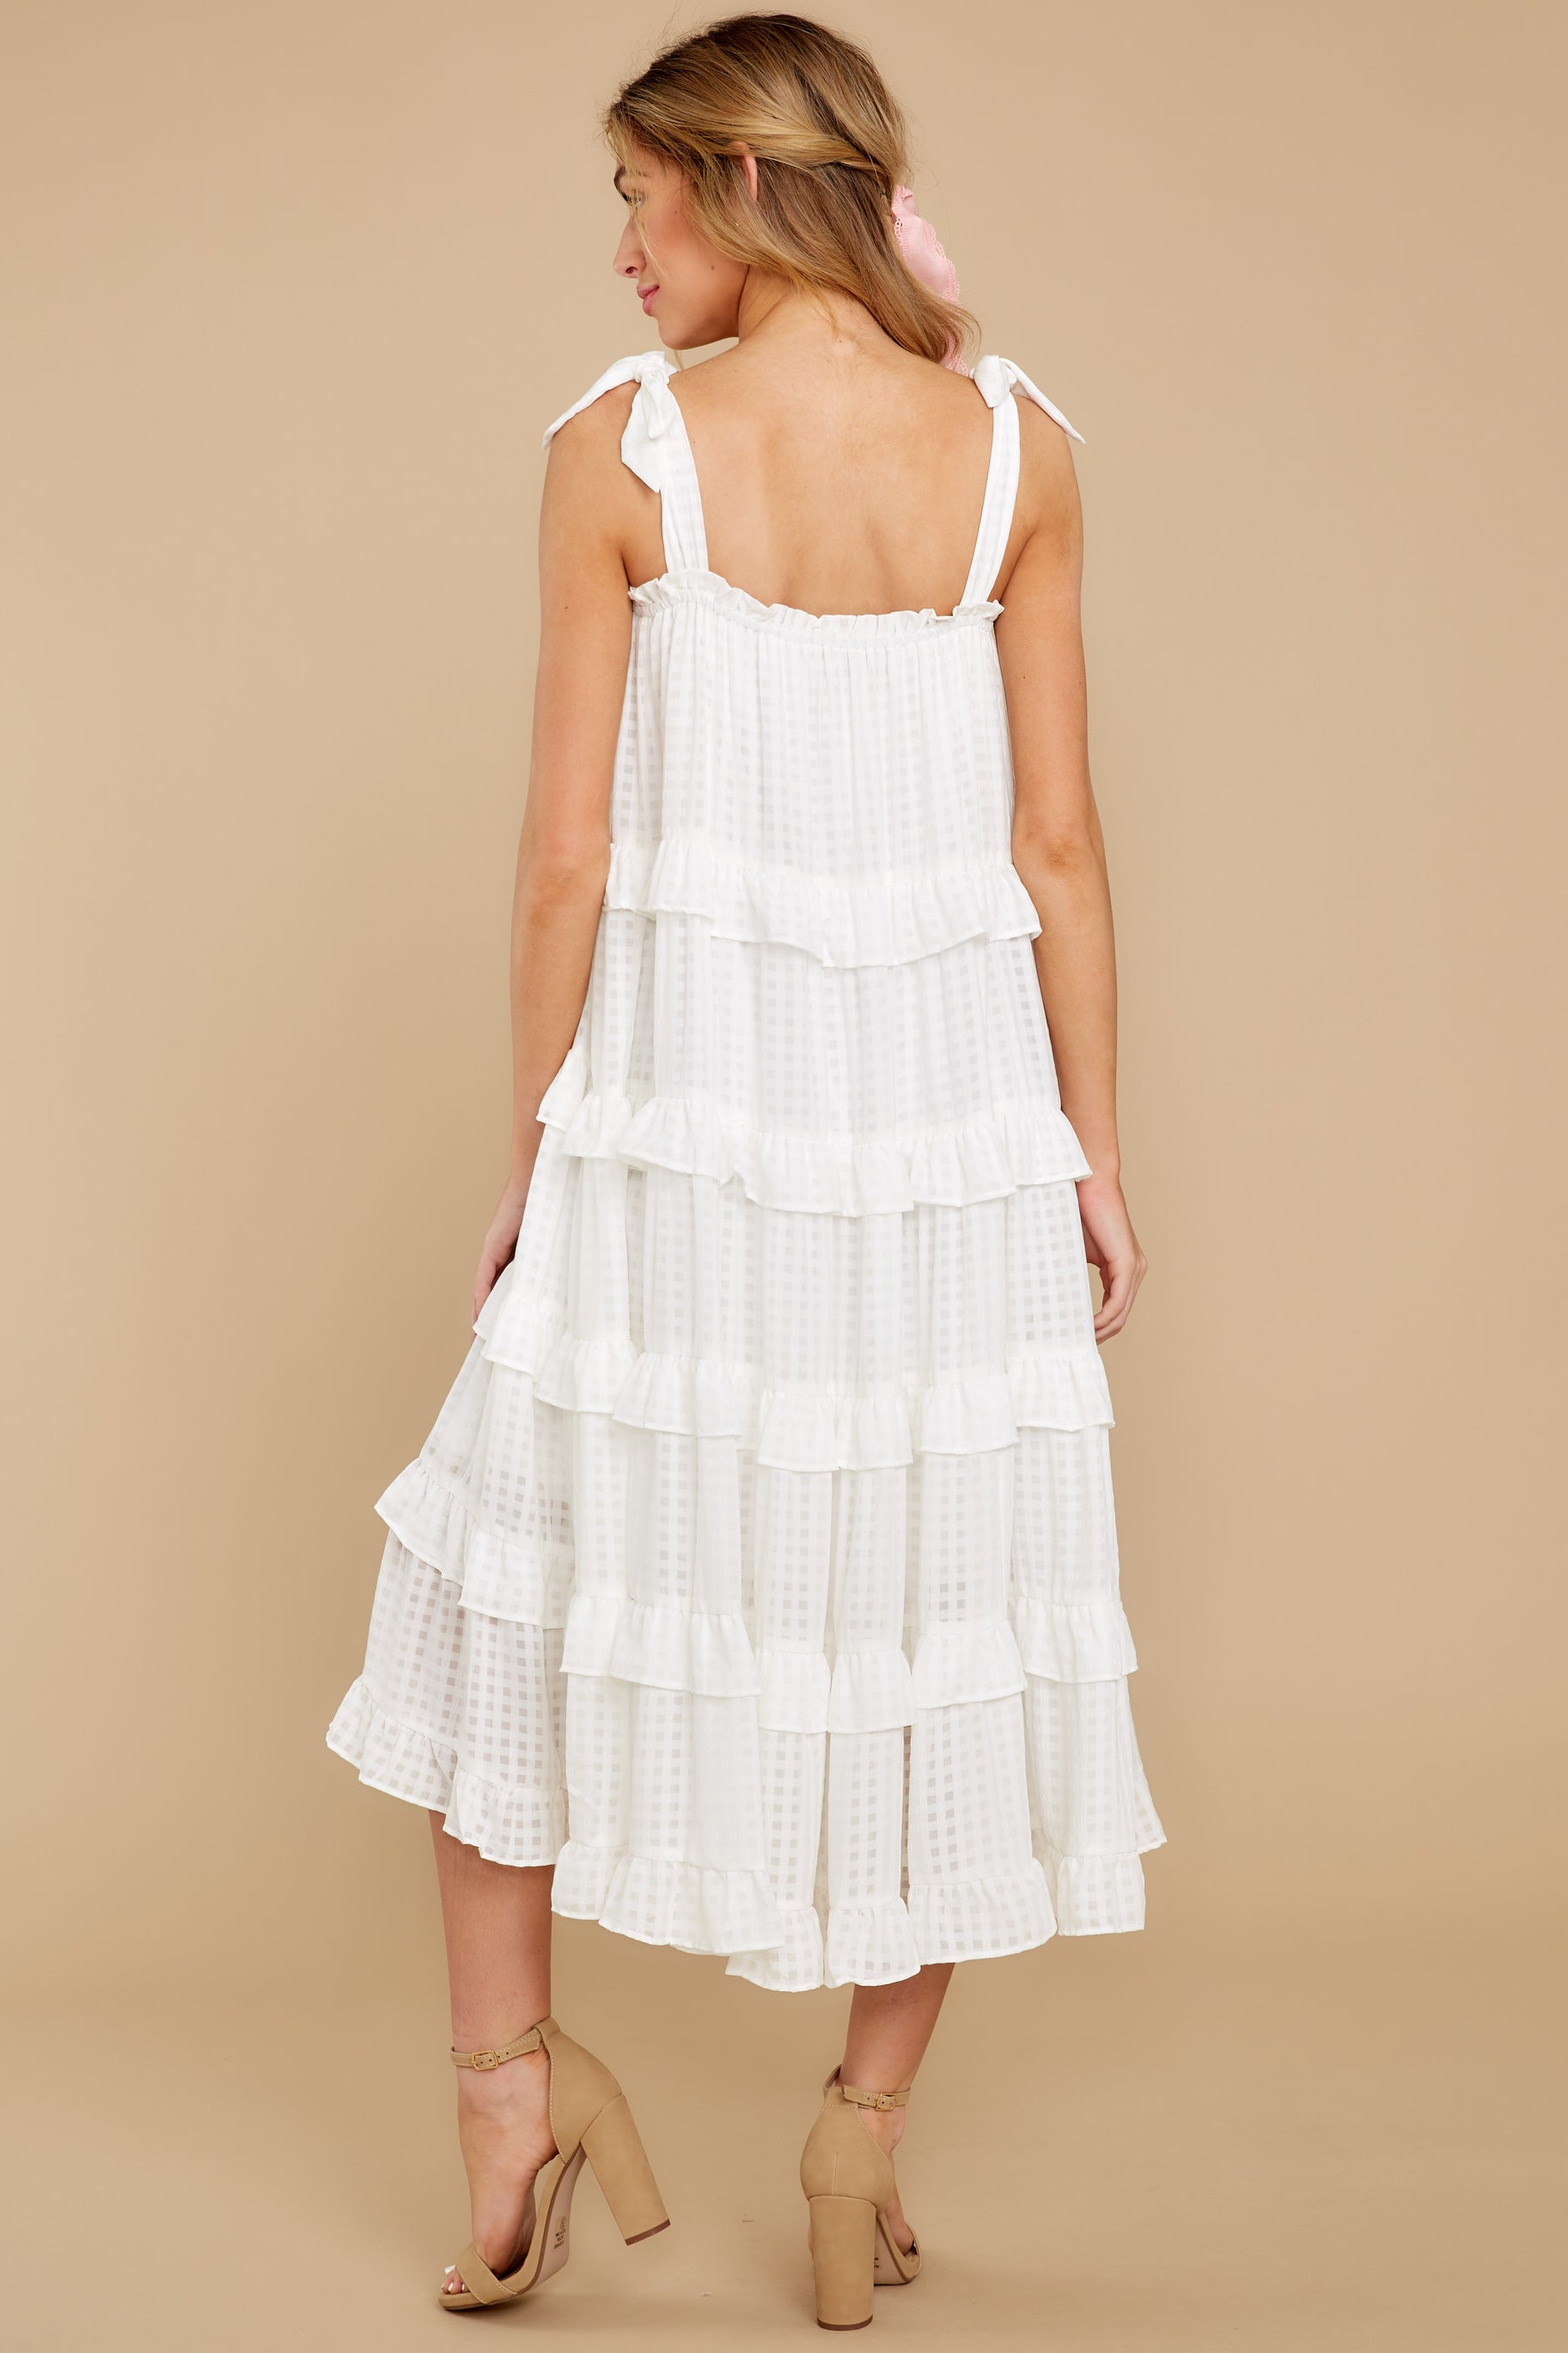 8 Never Say Never White Midi Dress at reddress.com